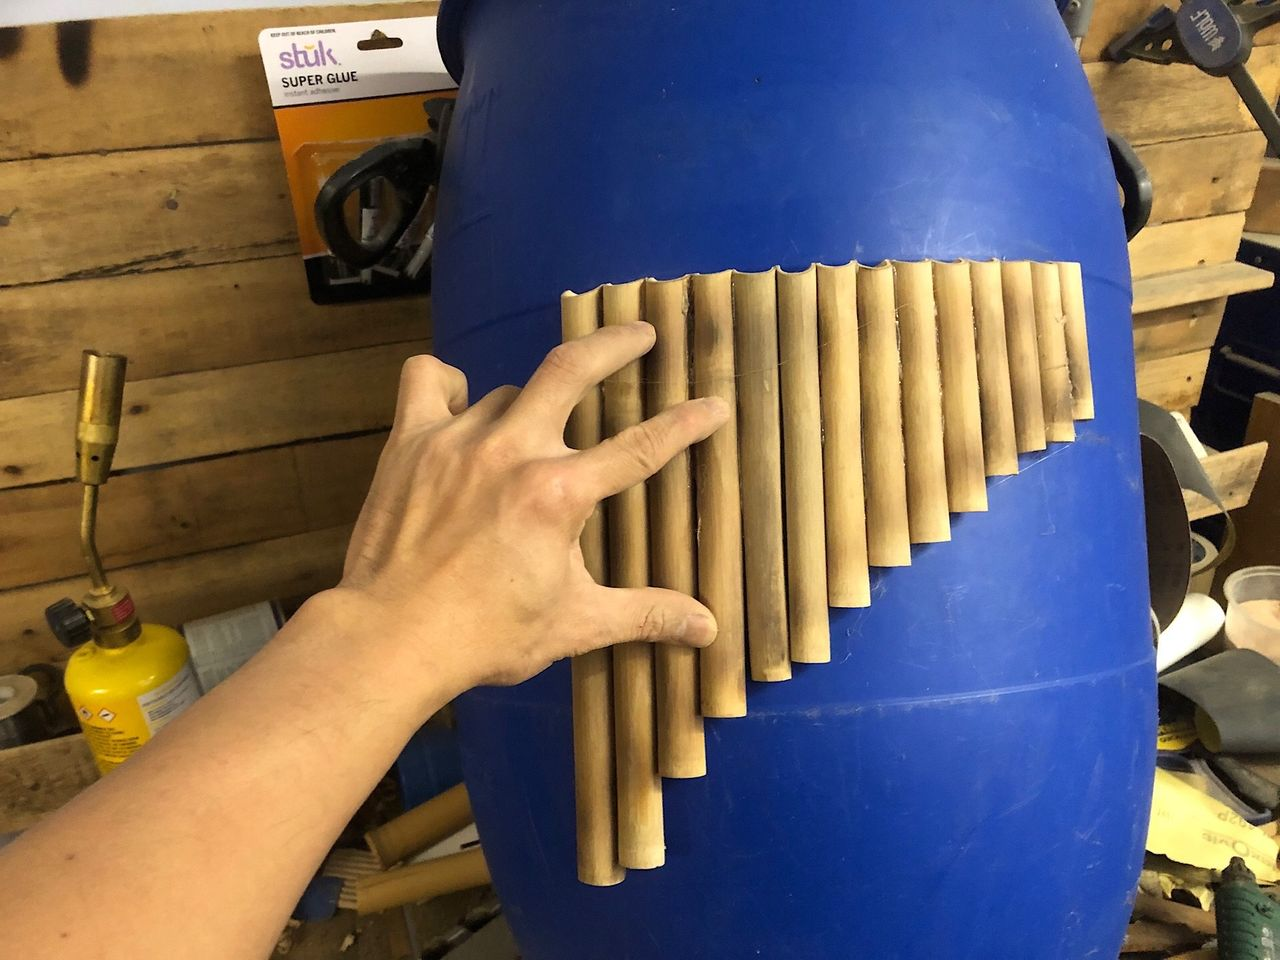 Making a pan flute with bamboo using a plastic barrel